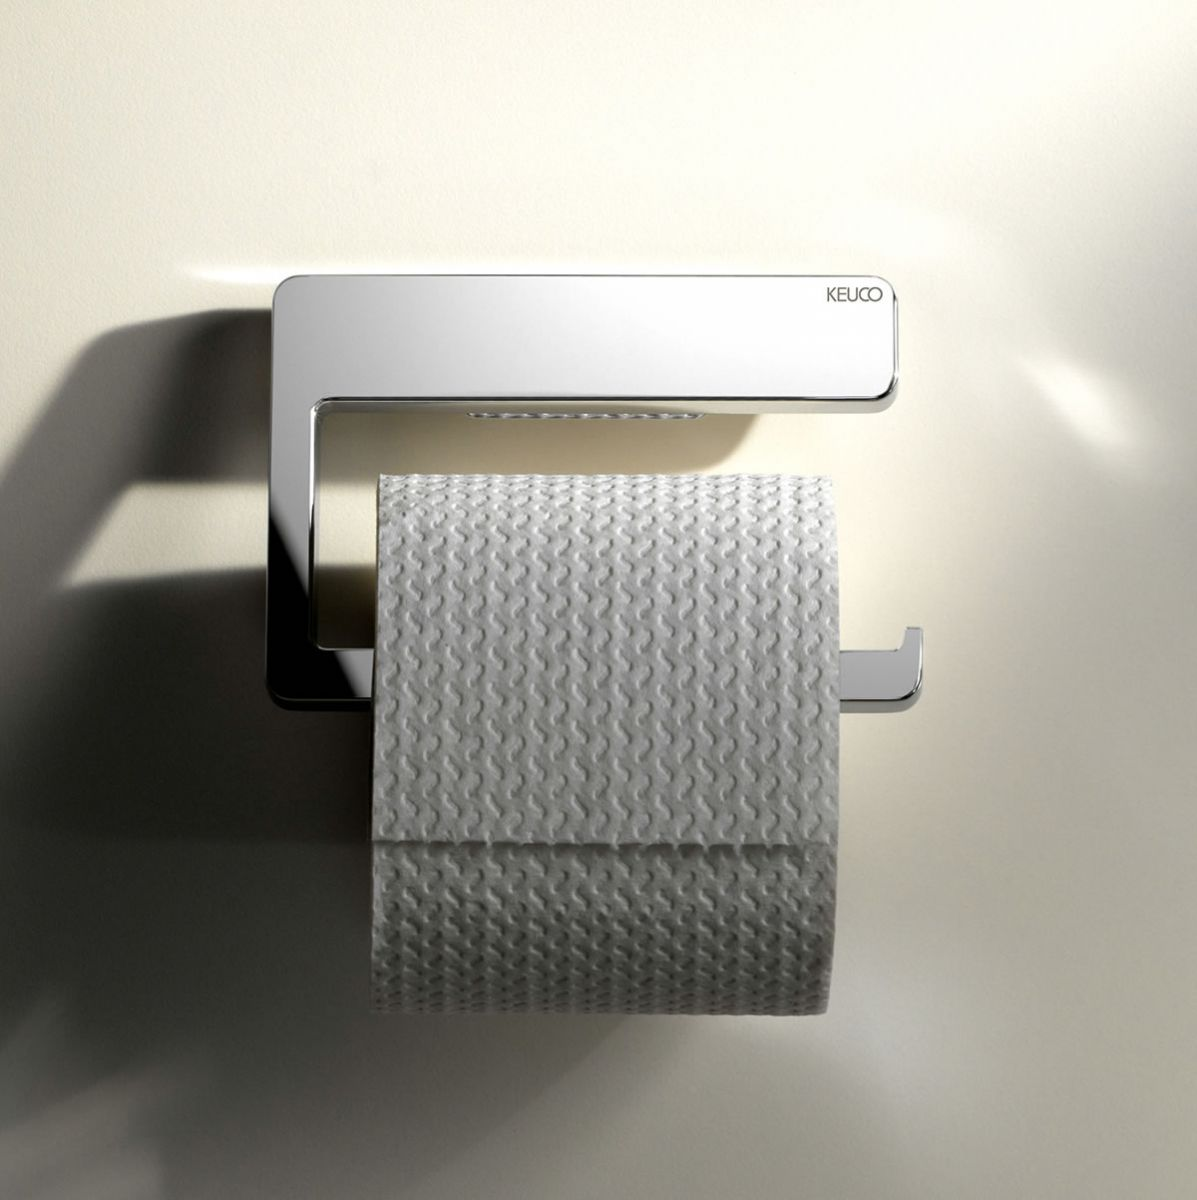 Keuco moll toilet roll holder uk bathrooms for Bathroom accessories toilet roll holder